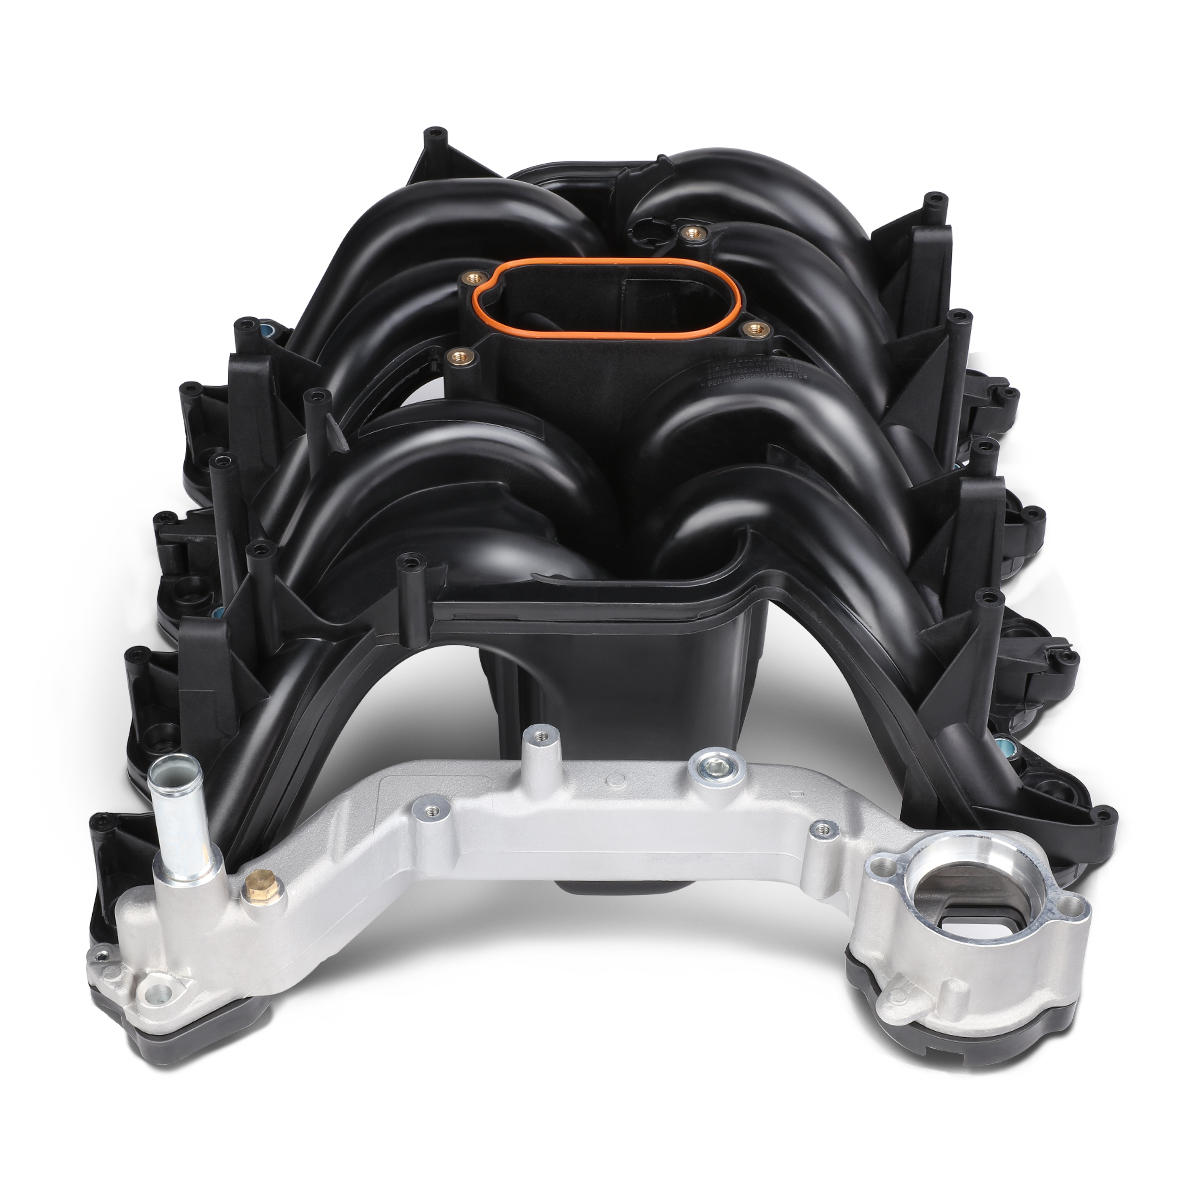 615-188 Upper Intake Manifold with Gasket Kit Fits for Ford E-150 ...